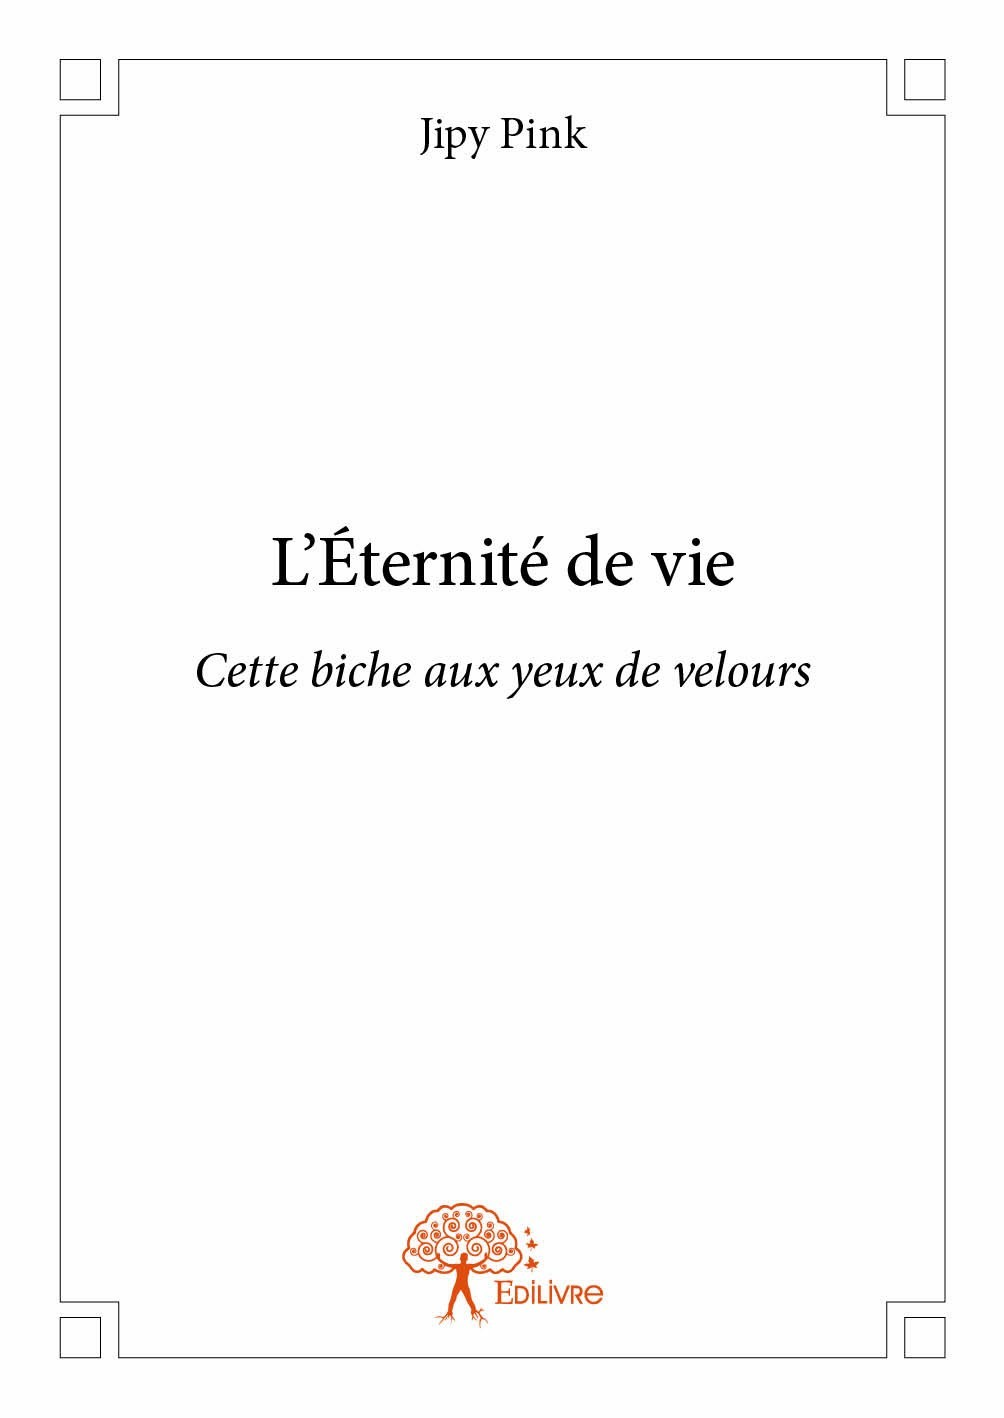 L'ETERNITE DE VIE